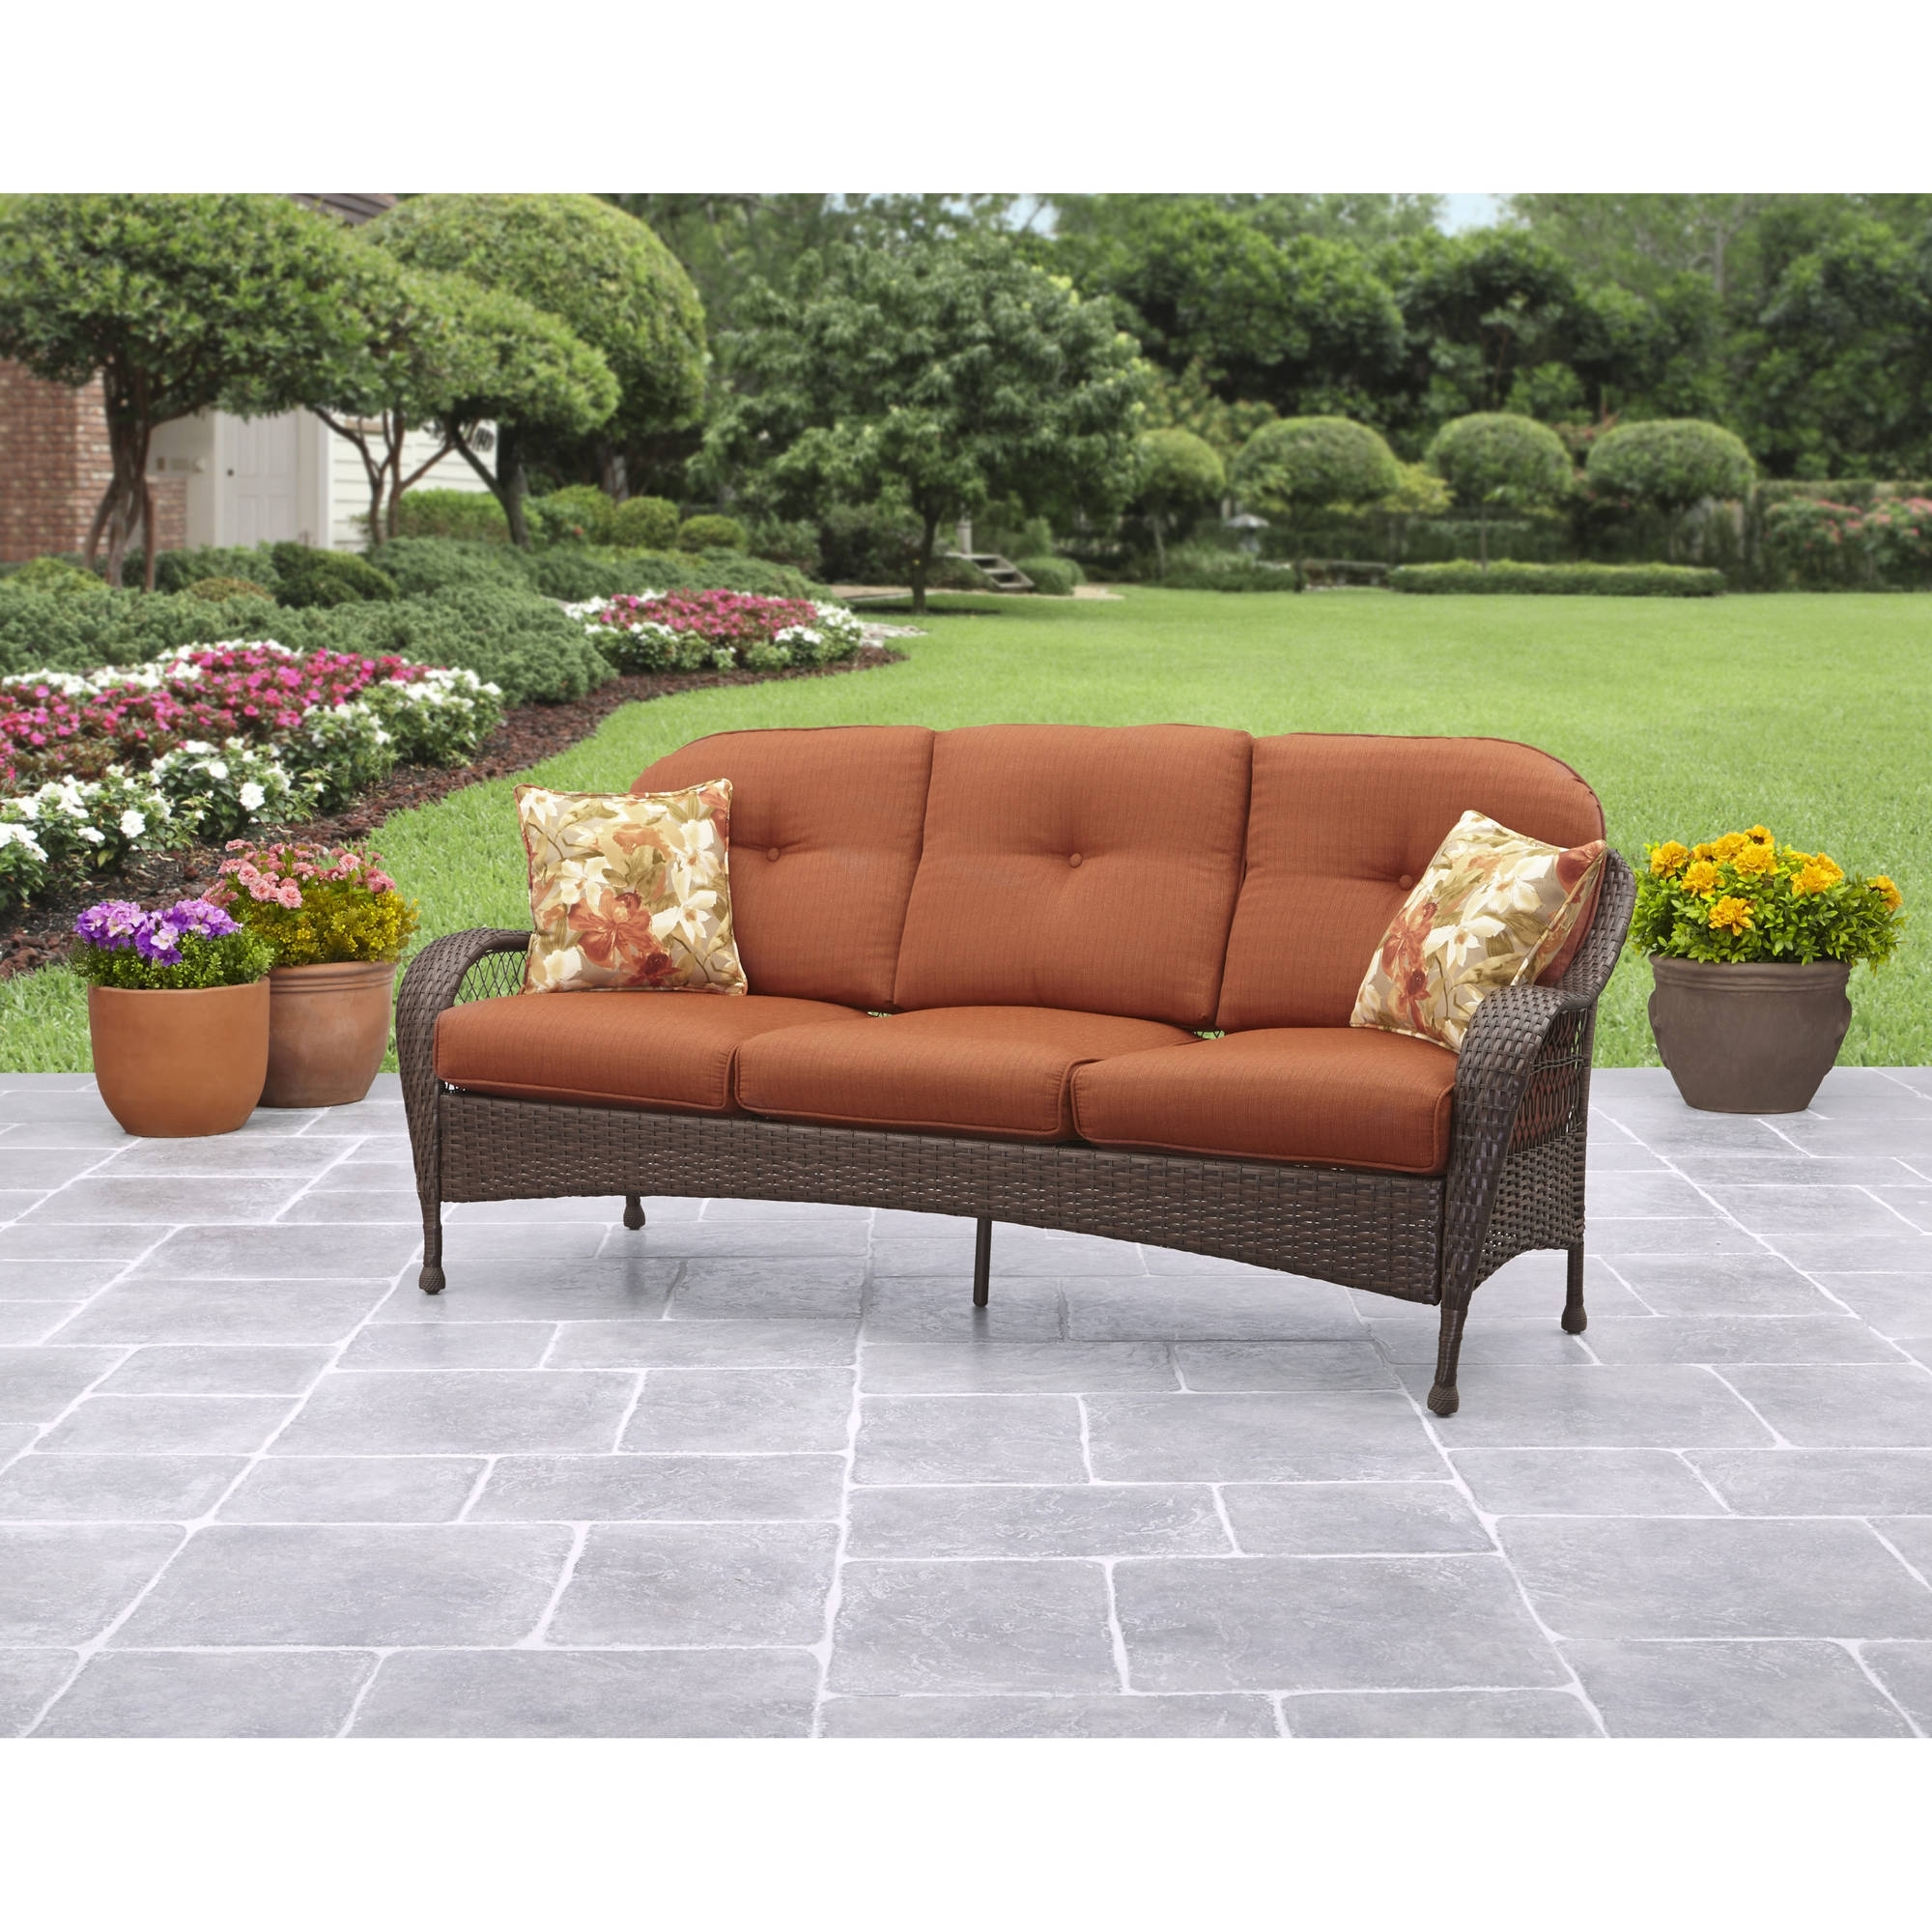 Better Homes And Gardens Azalea Ridge Outdoor Sofa, Seats 3 Regarding Most Recently Released Patio Sofas (View 16 of 20)